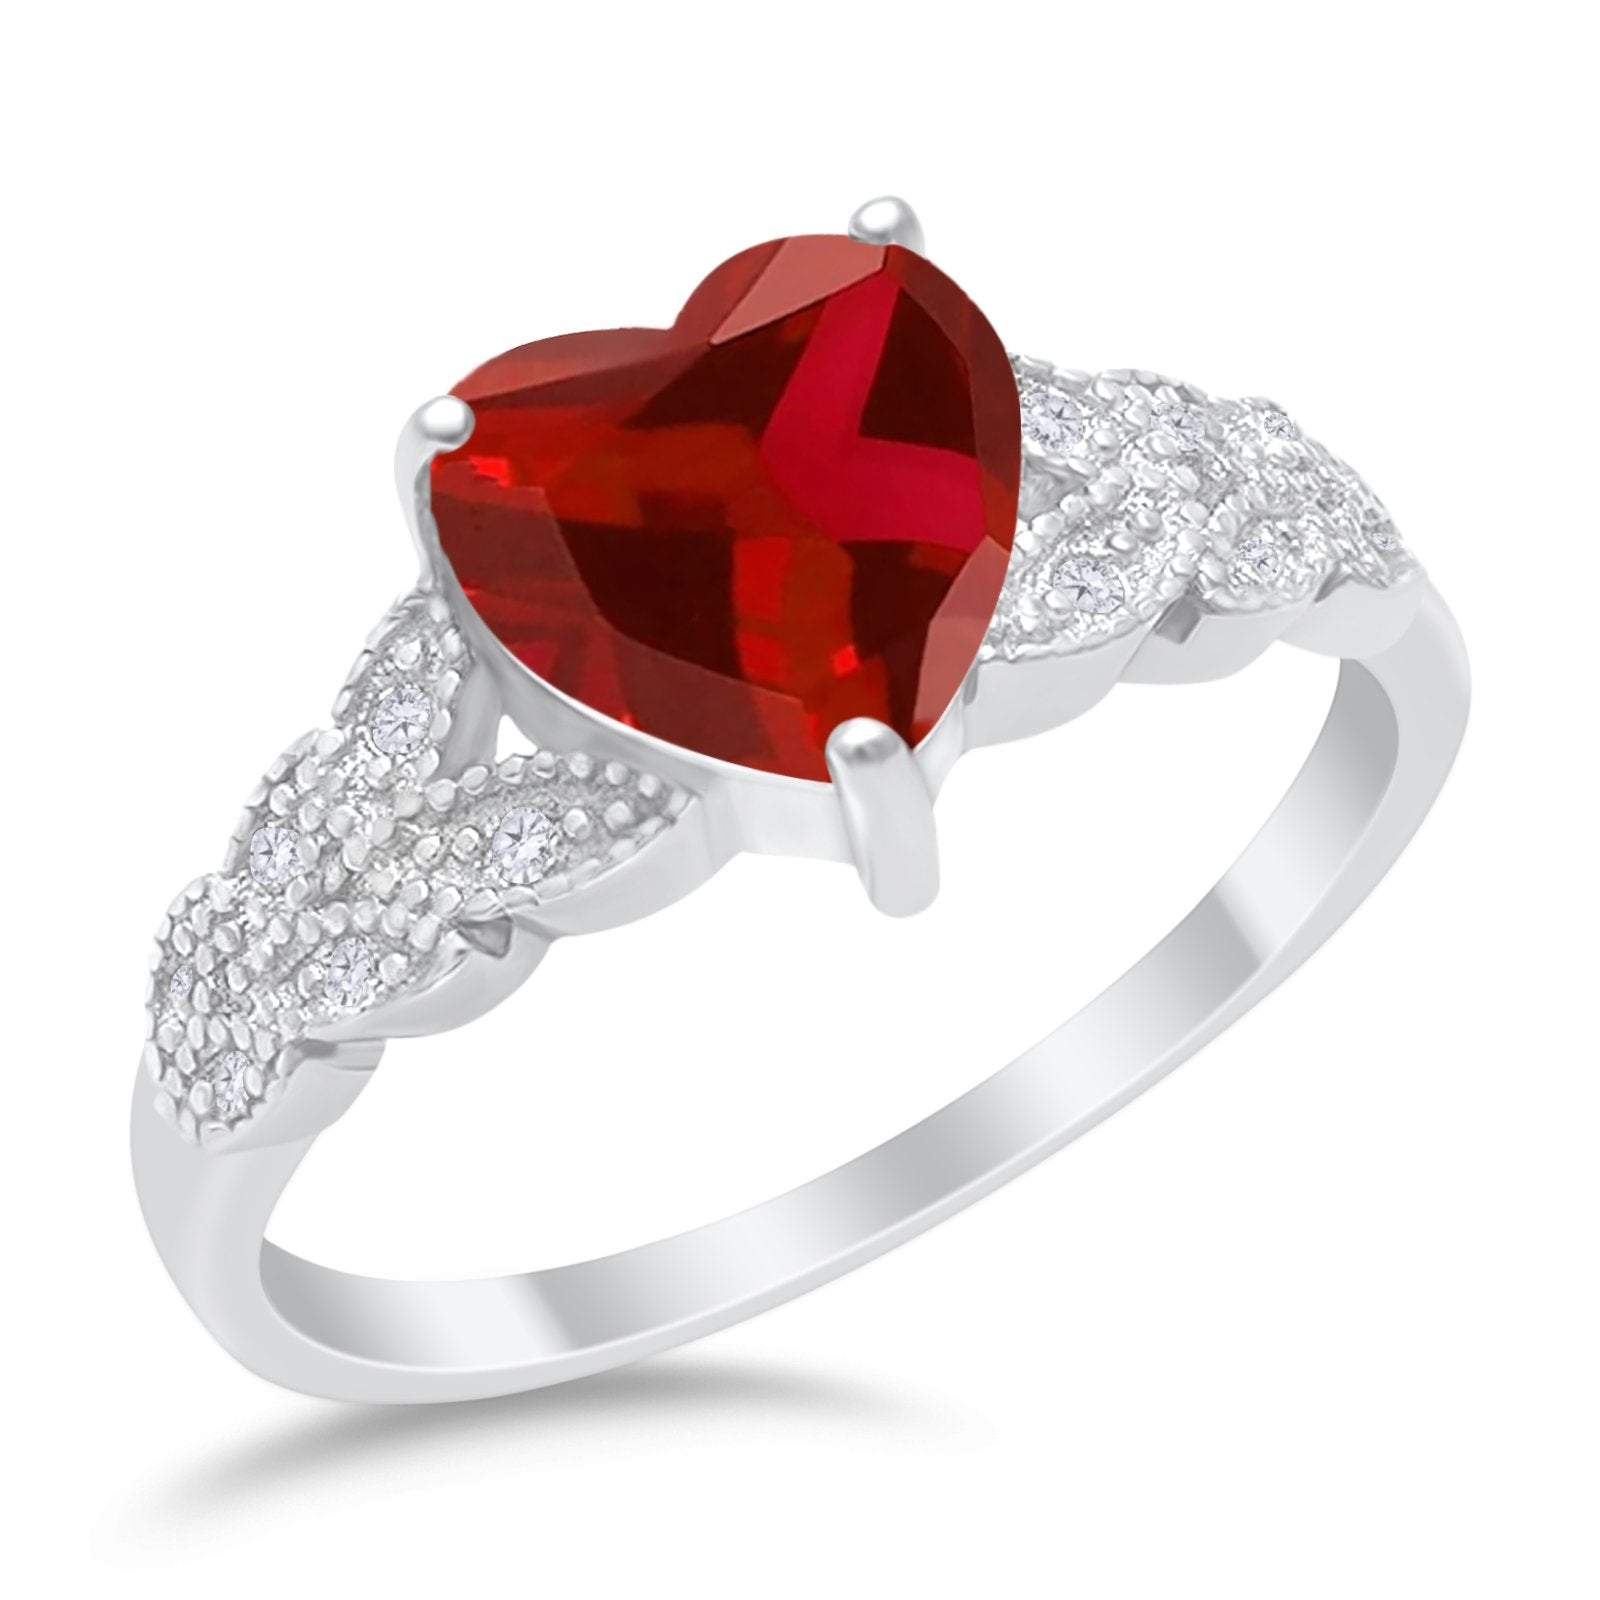 Accent Heart Promise Ring Simulated Garnet Cubic Zirconia 925 Sterling Silver